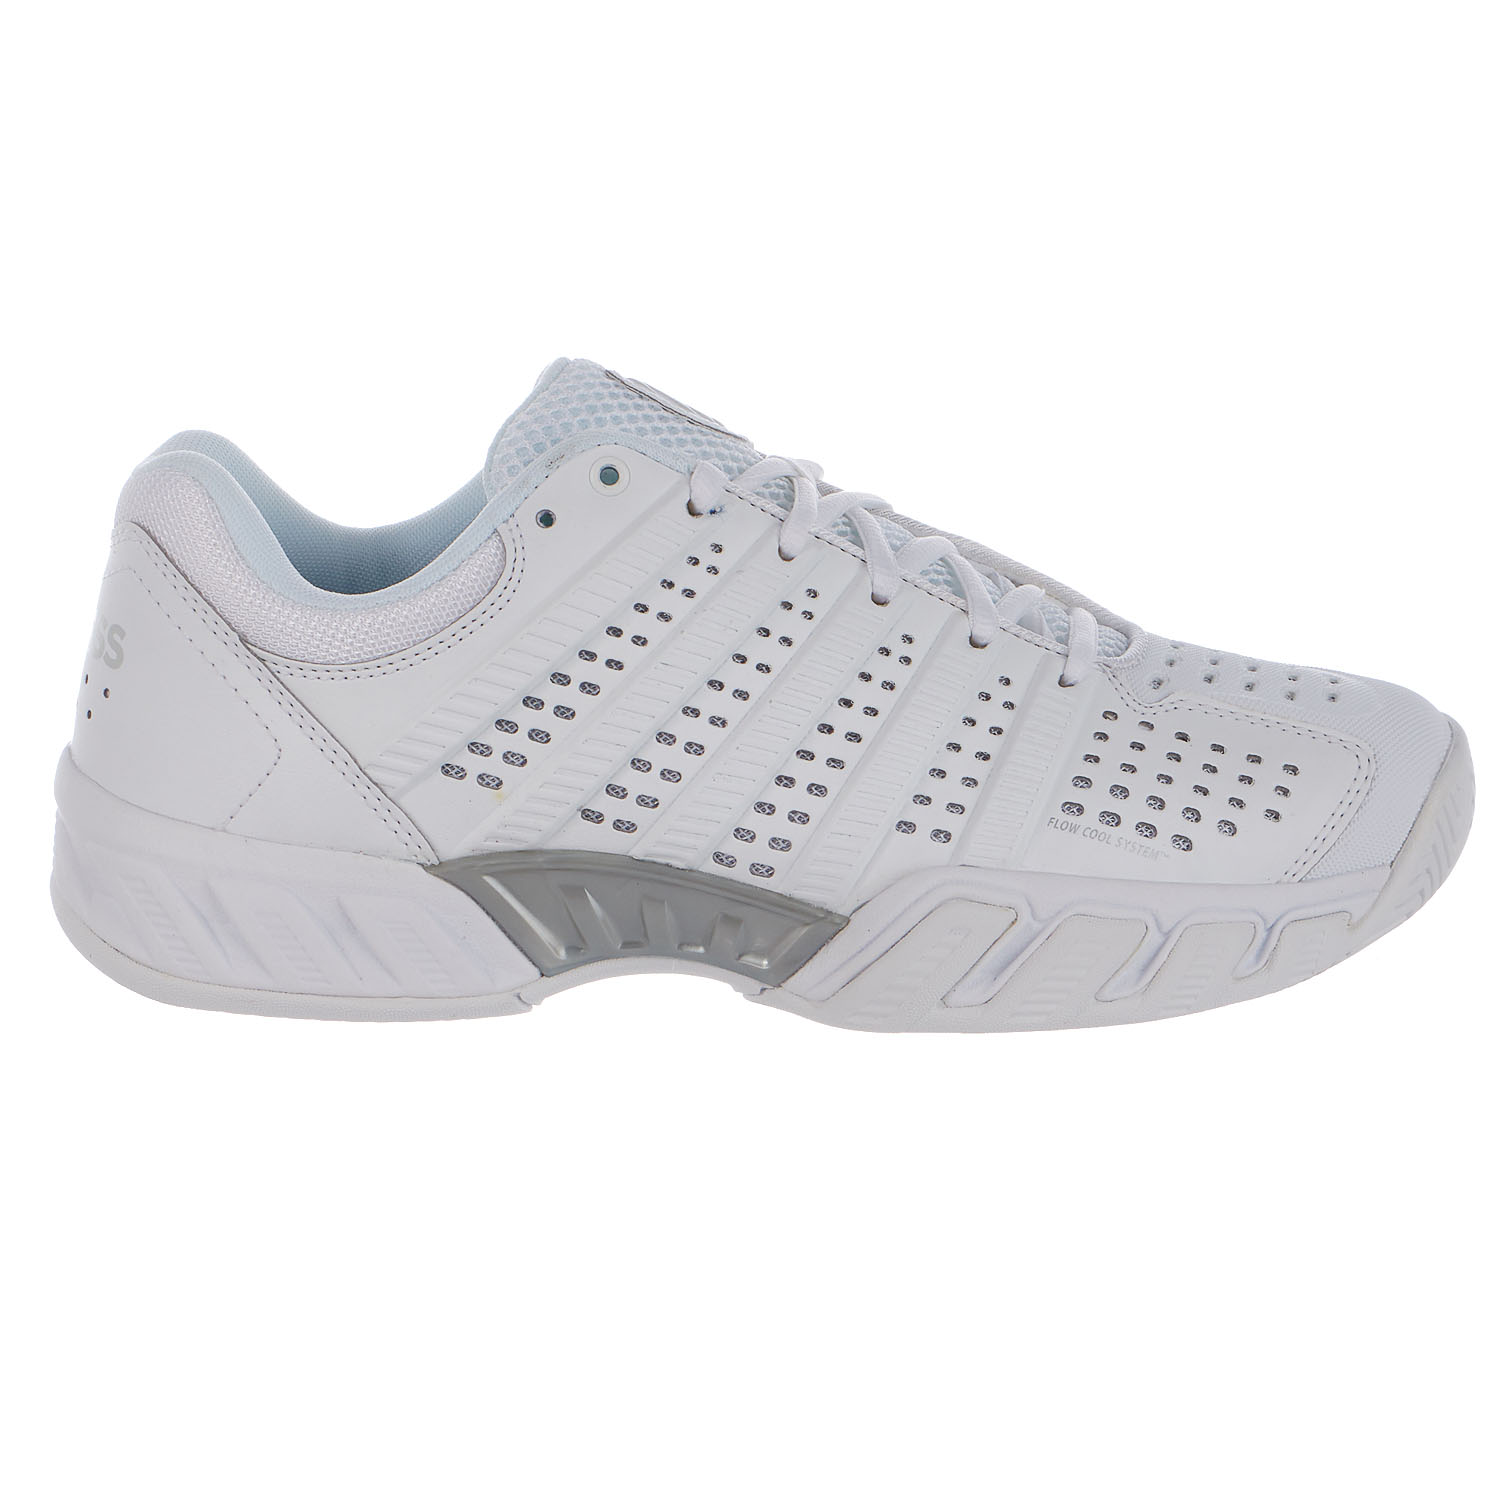 K-Swiss BigShot Light 2.5 Tennis Sneaker Shoe Mens by K-Swiss